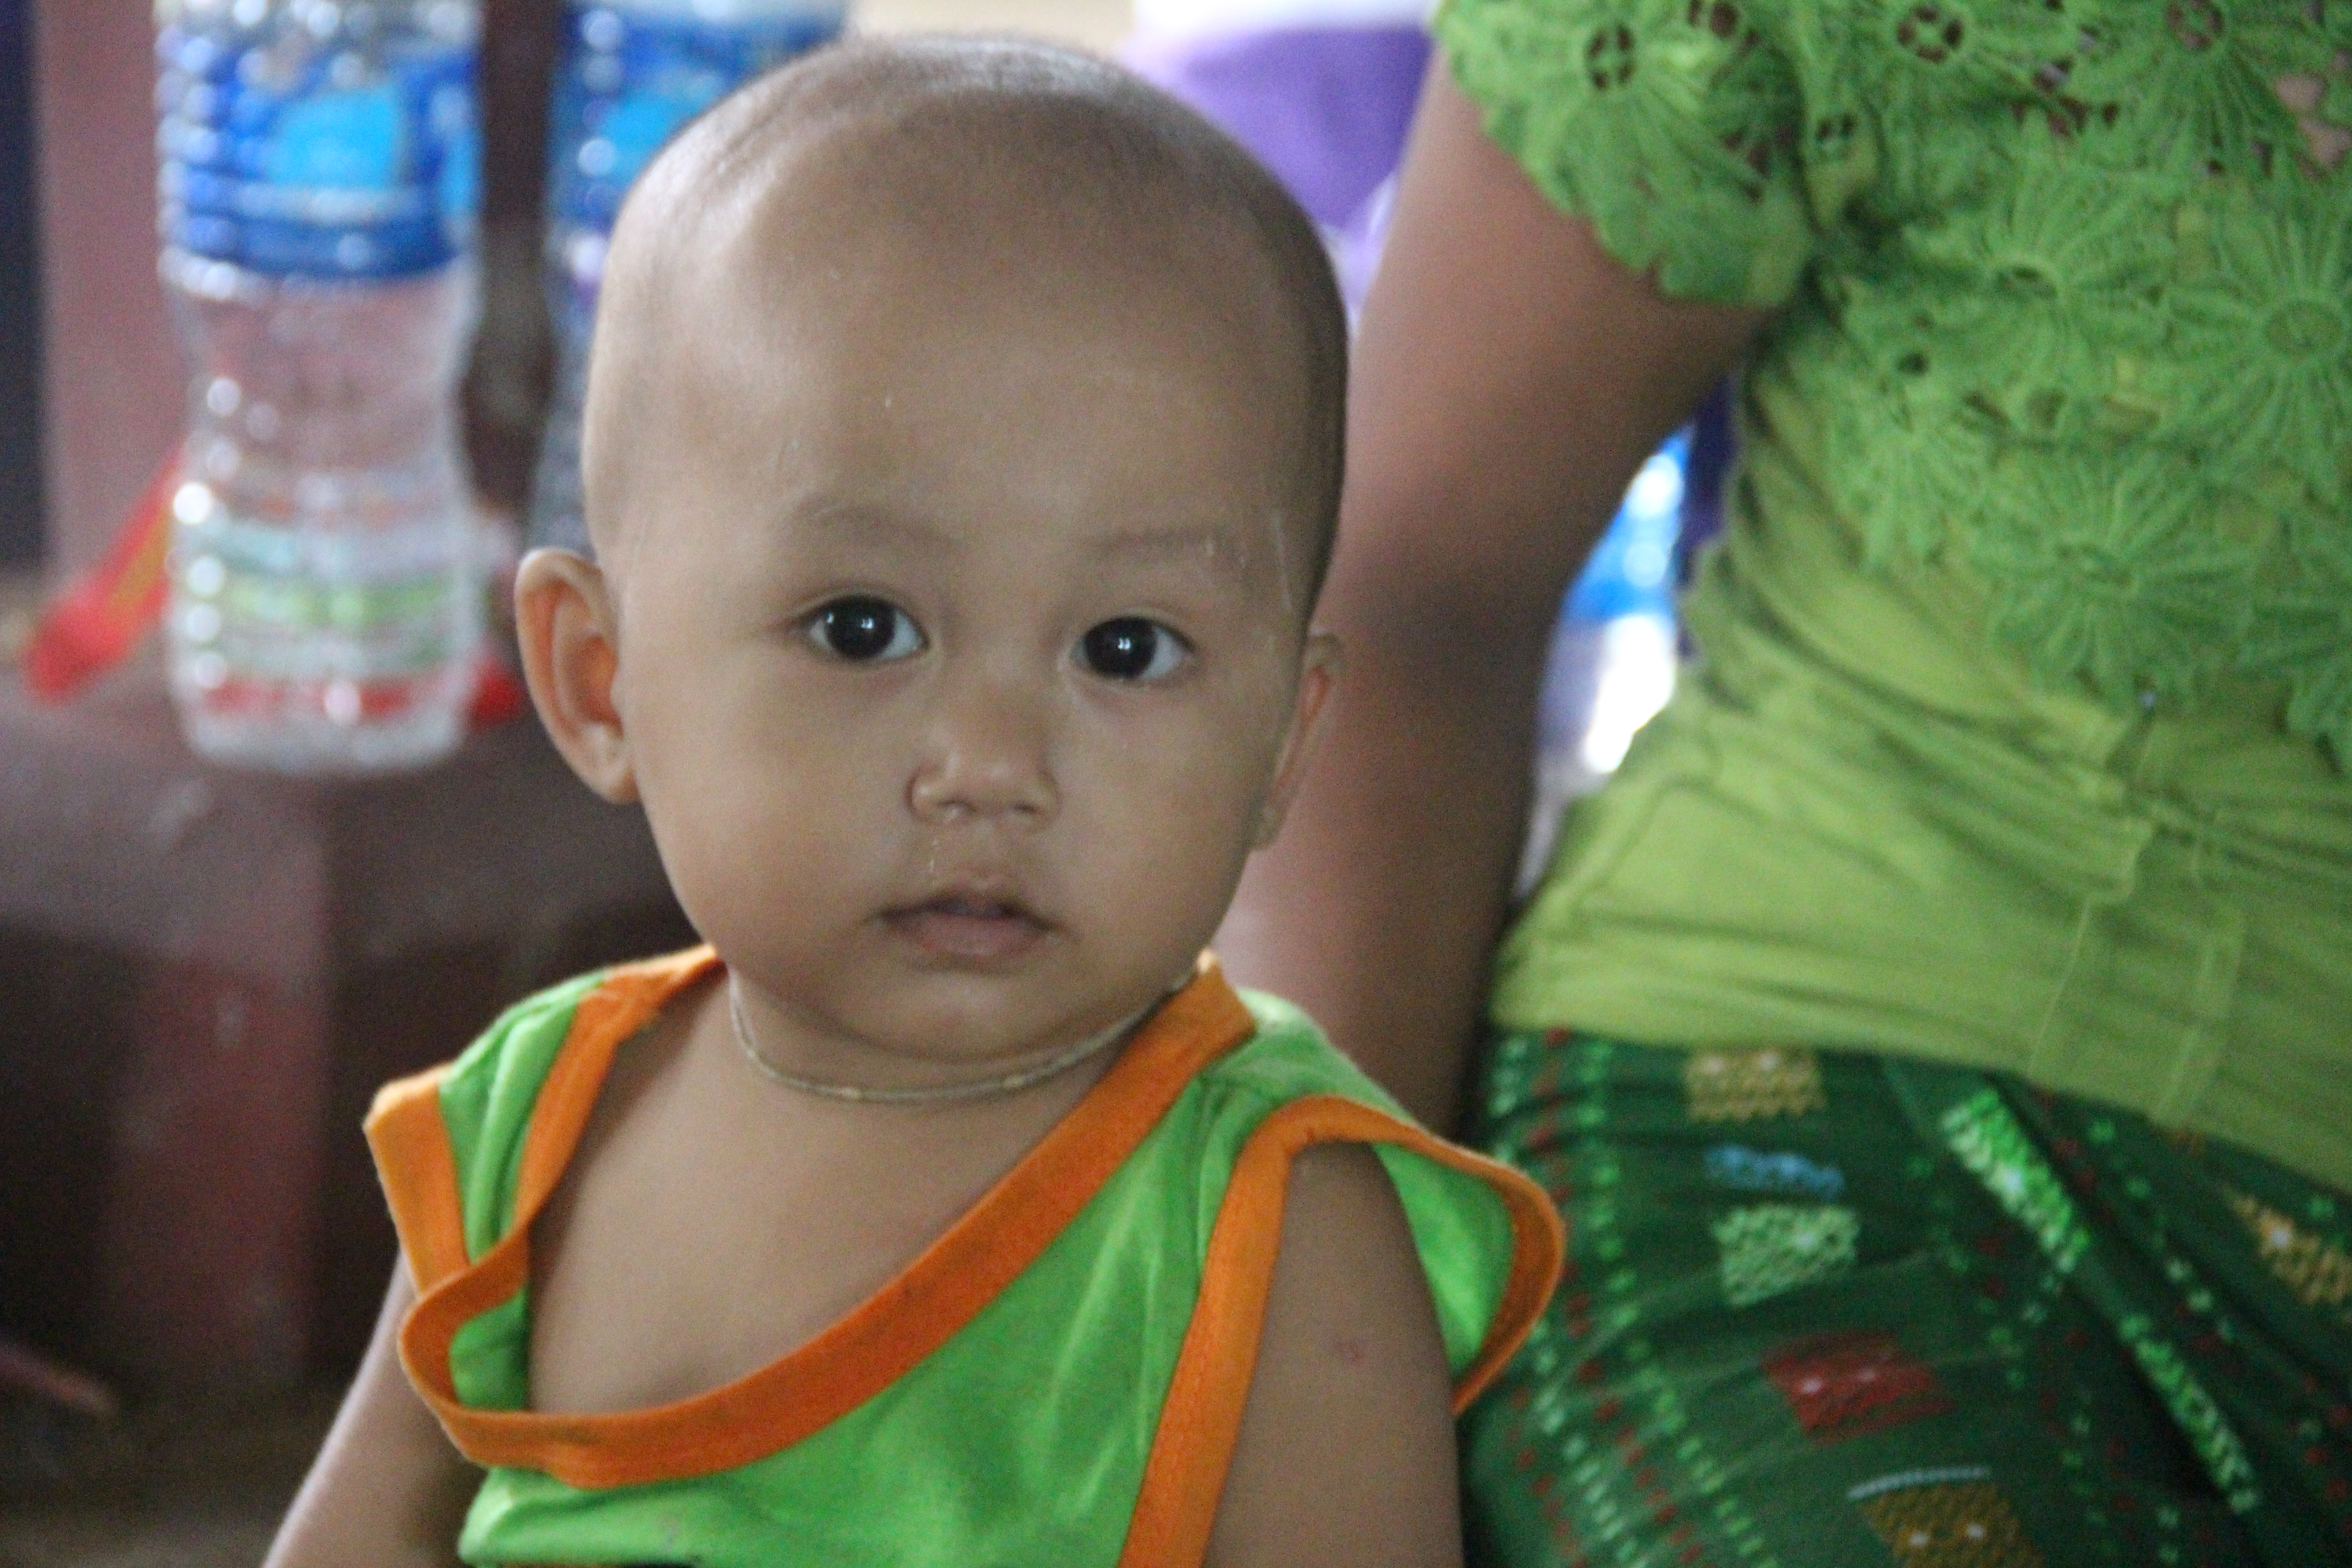 A baby boy is sitting next to his mother during community meeting in Ayeyarwaddy region. Photo by: Kaung Latt/ Oxfam